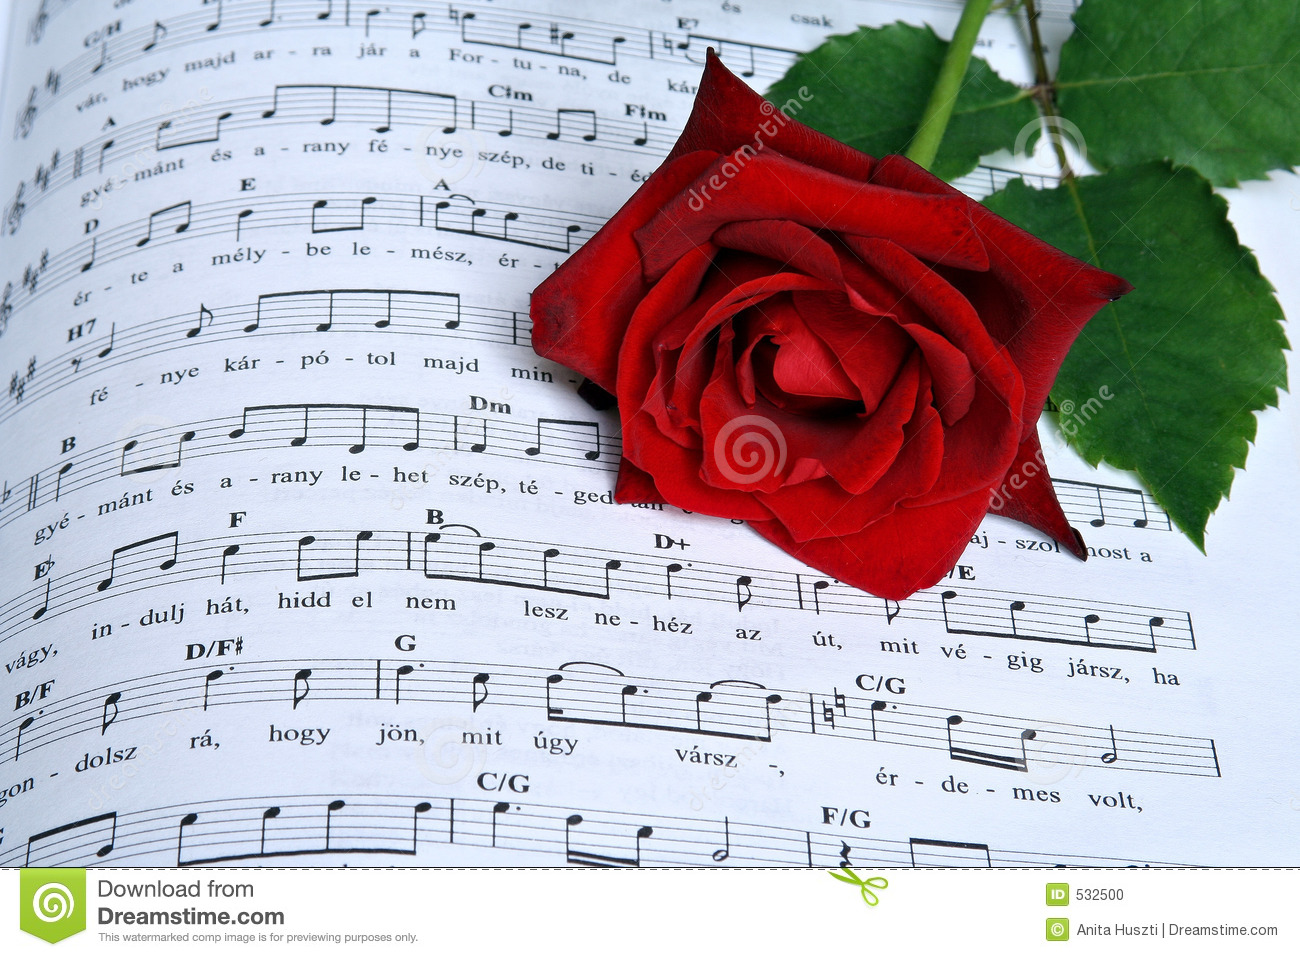 Roses song download